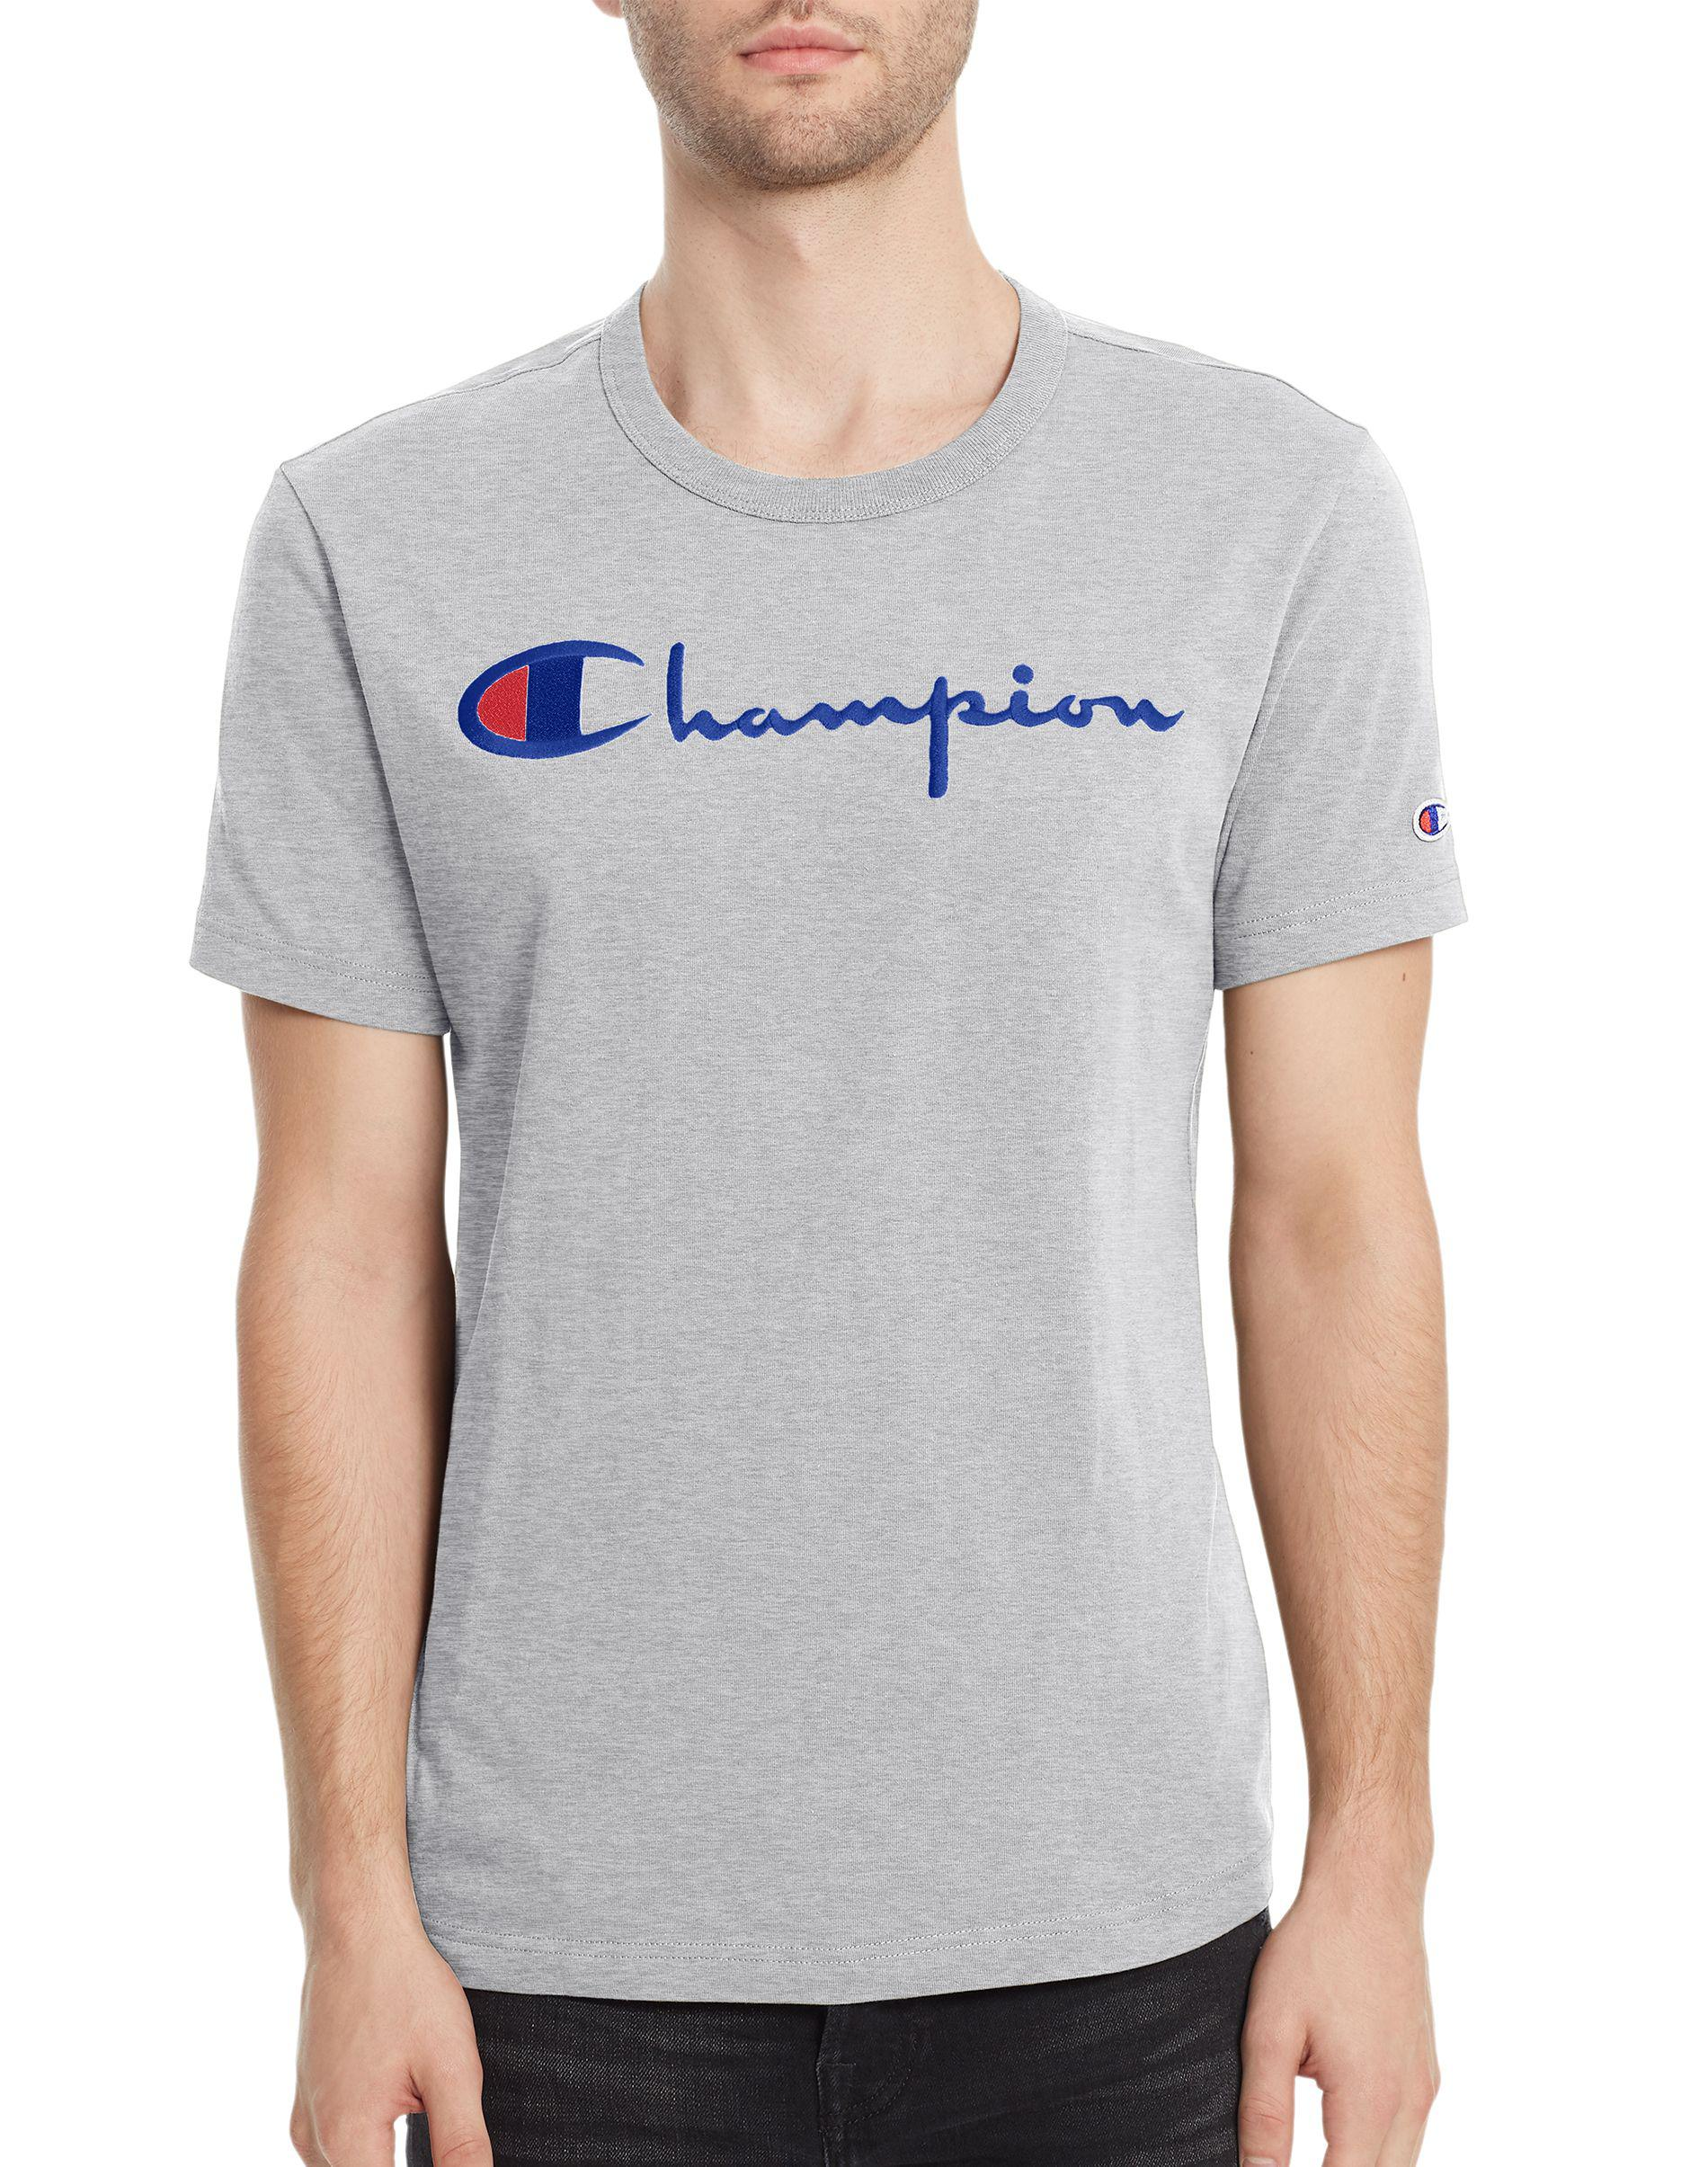 064bf7c6 Champion Europe Script Logo Tee—limited Edition in Gray for Men - Lyst